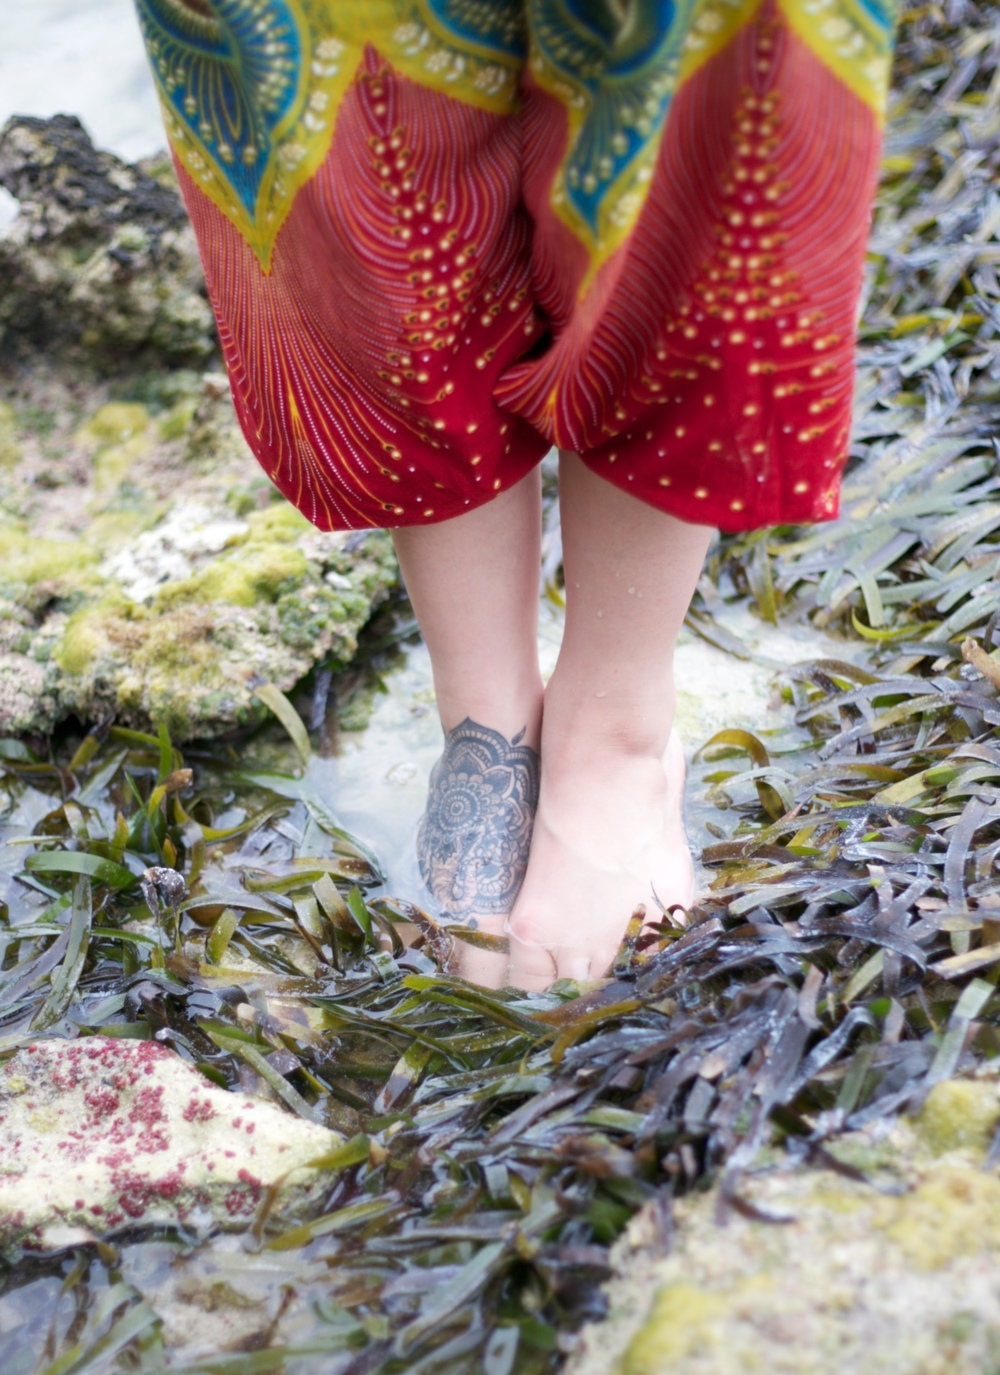 Brenda standing in seaweed in the shallows of the sea.